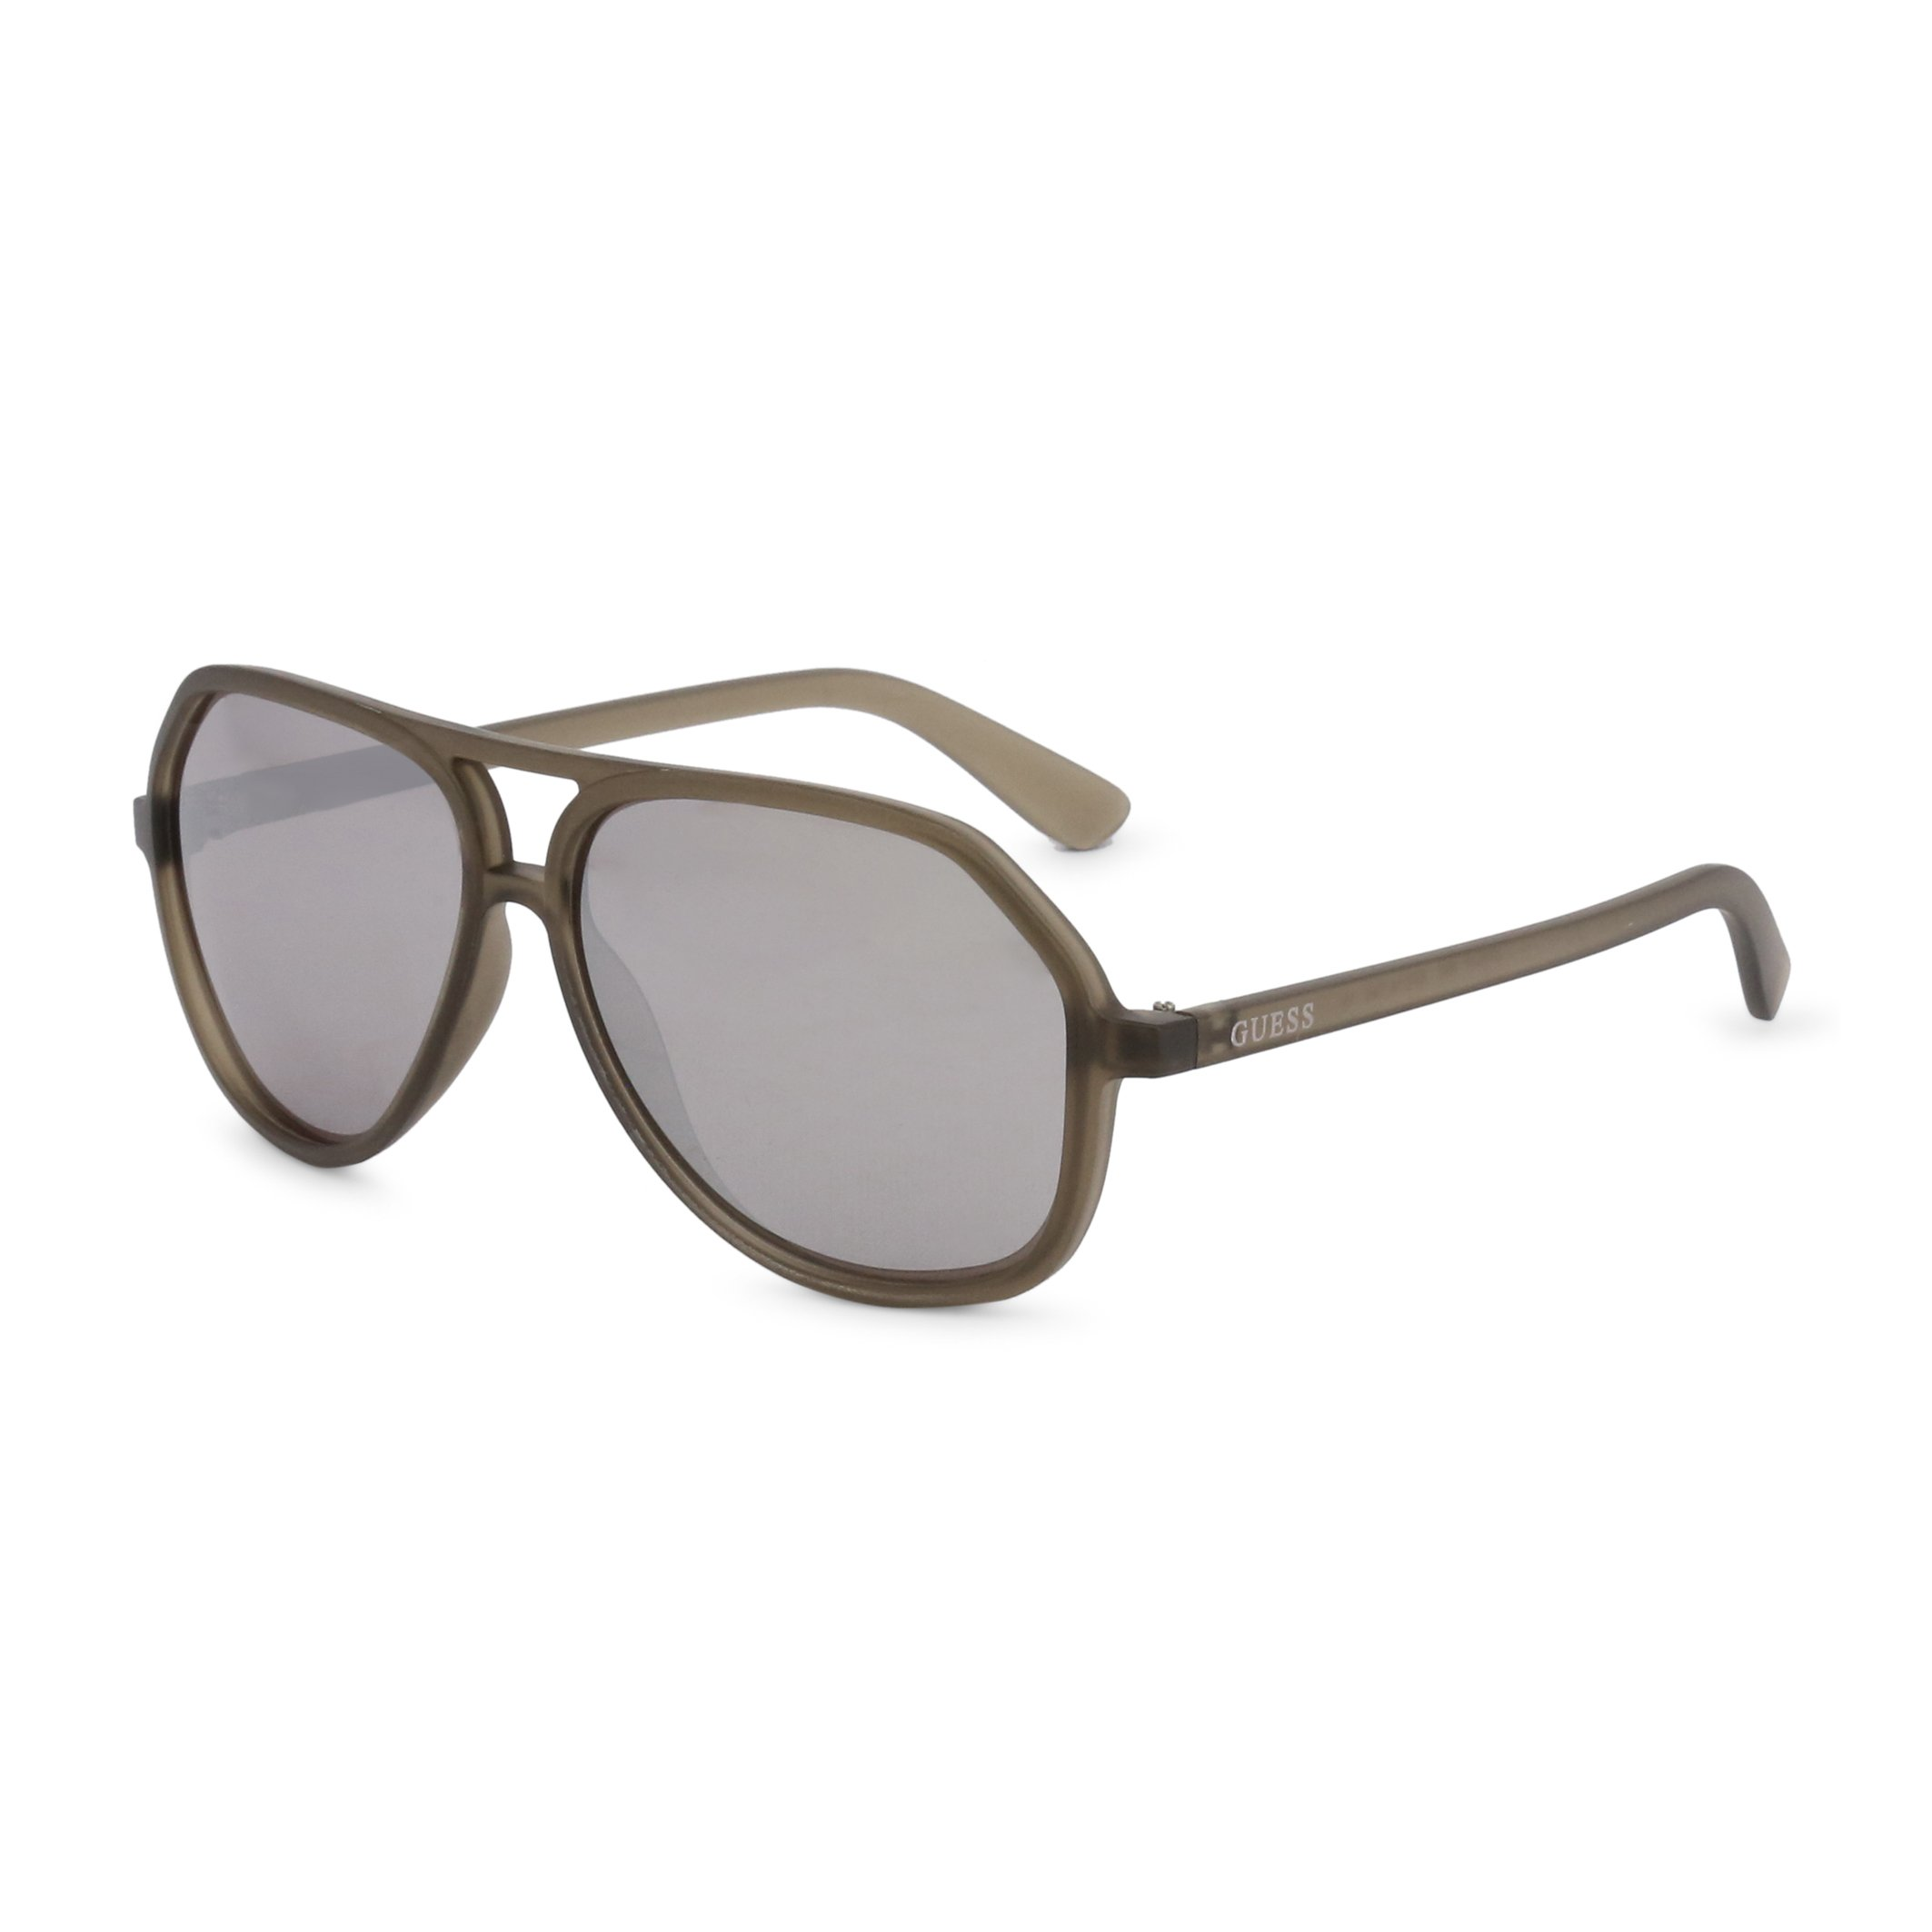 Guess Unisex Sunglasses Brown GF0217 - brown-1 NOSIZE